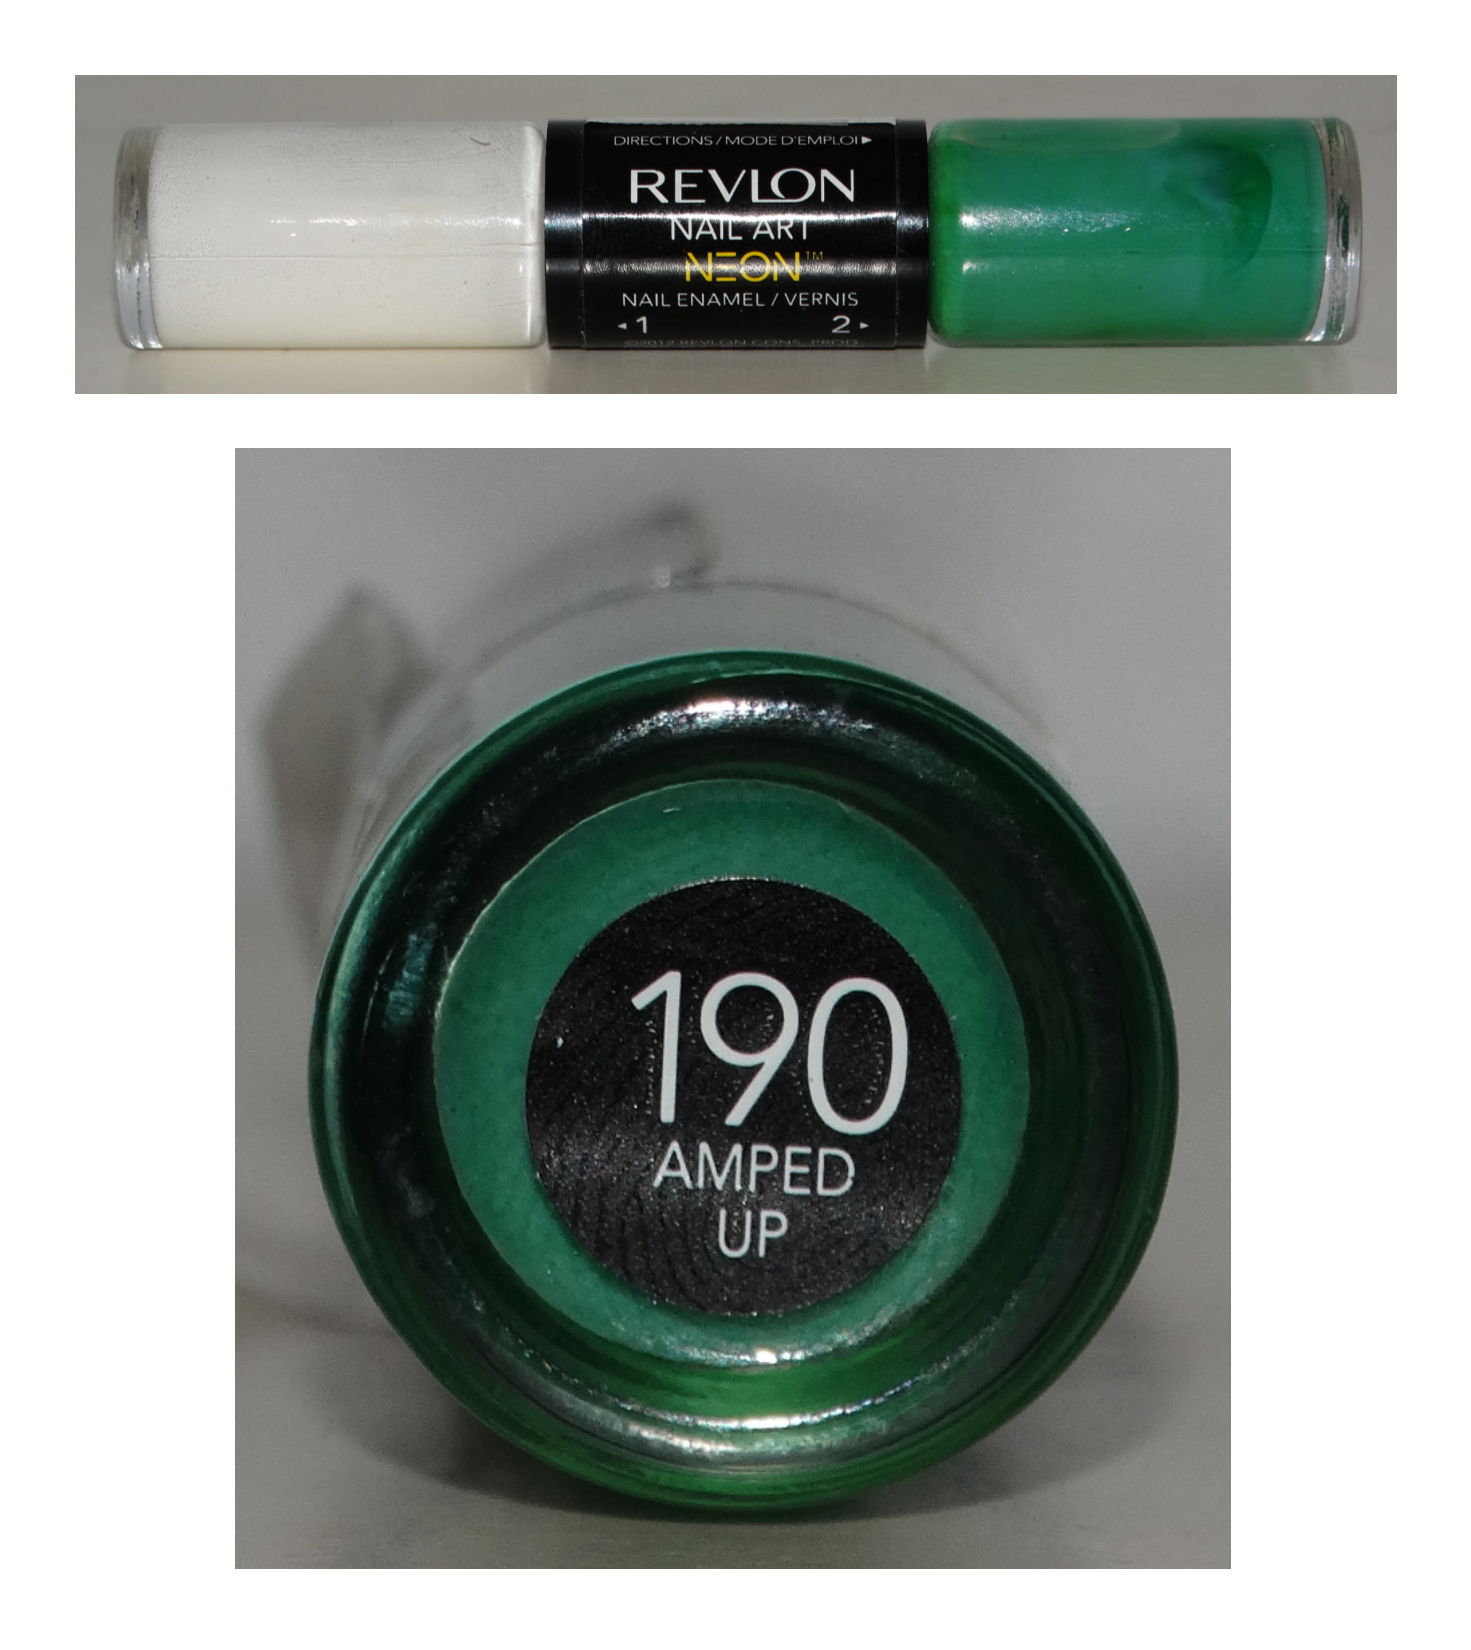 Revlon Nail Art Neon Amped Up Teal and White | Polish Collection ...